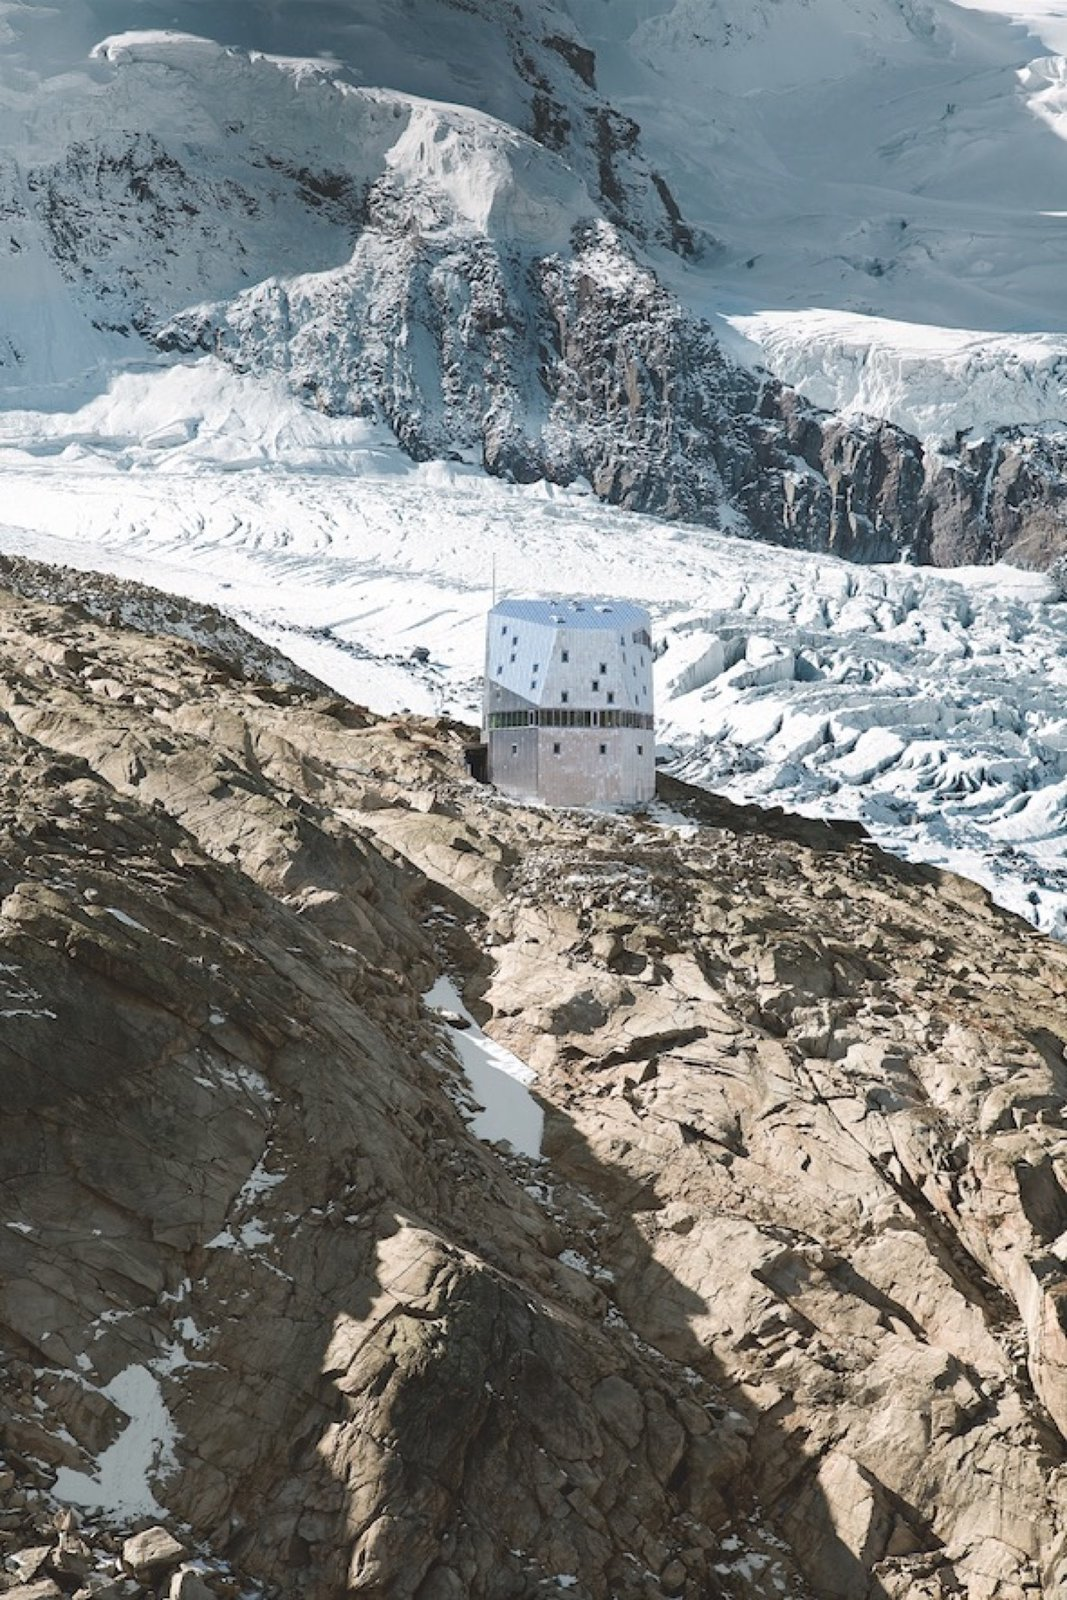 #alpinemodern #design #lifestyle #modern #elevatedliving #quiestdesign #monterosahut #swiss #alps #matterhorn #switzerland #zermatt   Head for Heights: Monte Rosa Hut by Alpine Modern